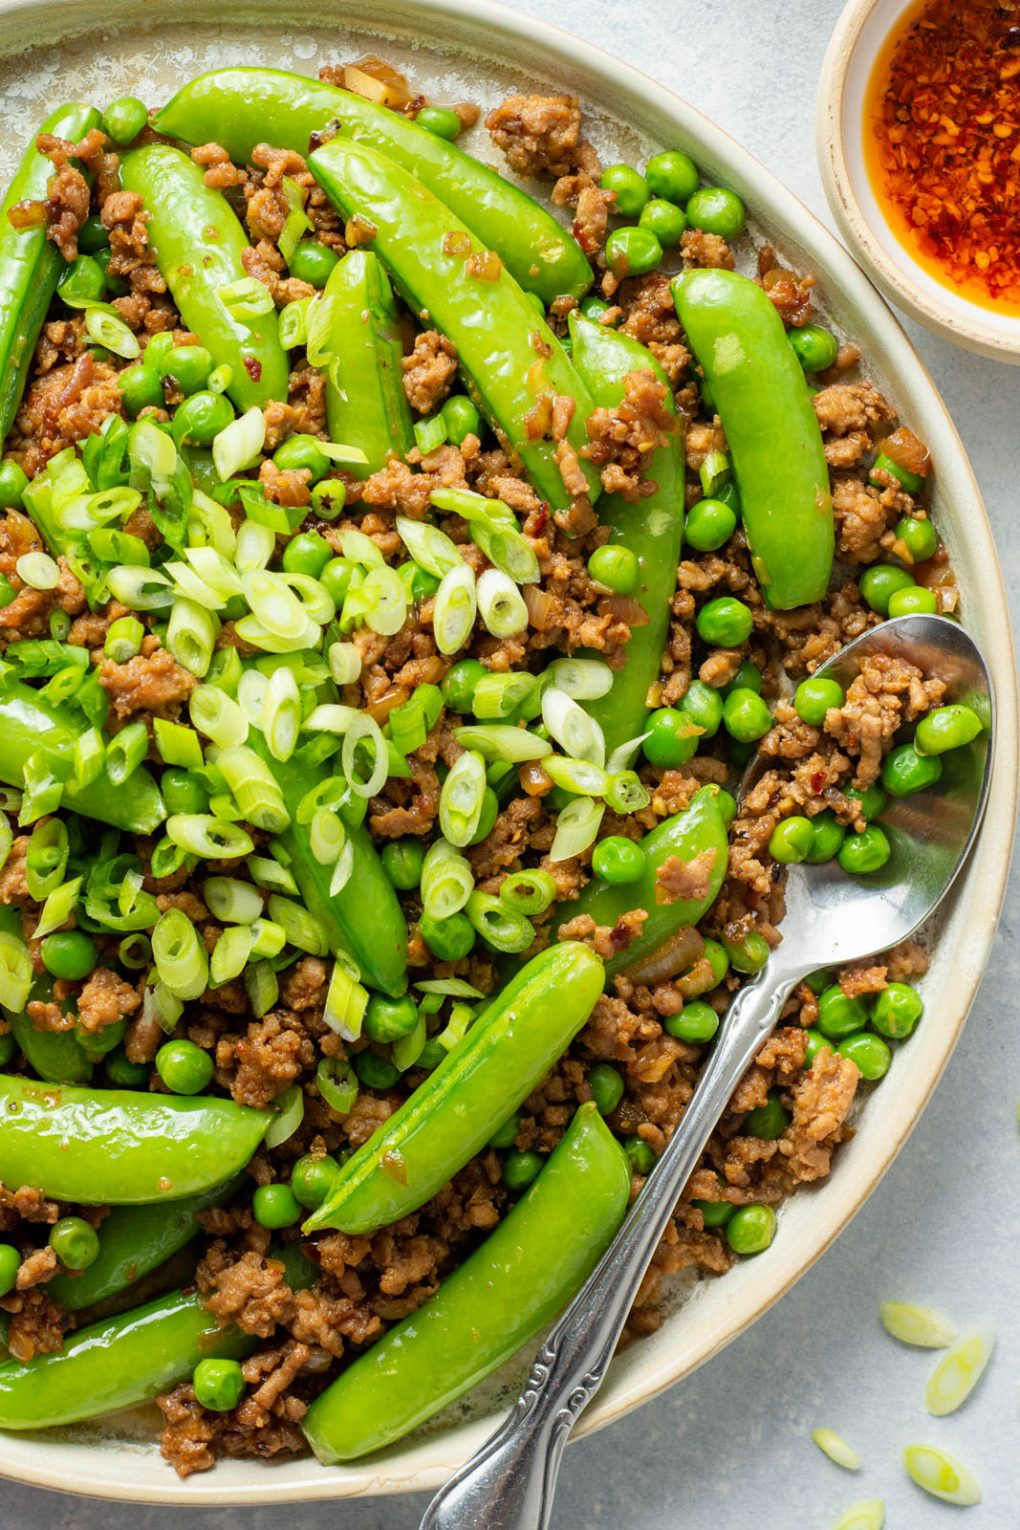 Super Up close shot of a round white rimmed ceramic plate filled with a crispy ground pork stir fry with green peas, sugar snap peas, and topped with plenty of green onions. A large silver spoon filled with stir fry is angled off the side of the plate. On a light colored background.